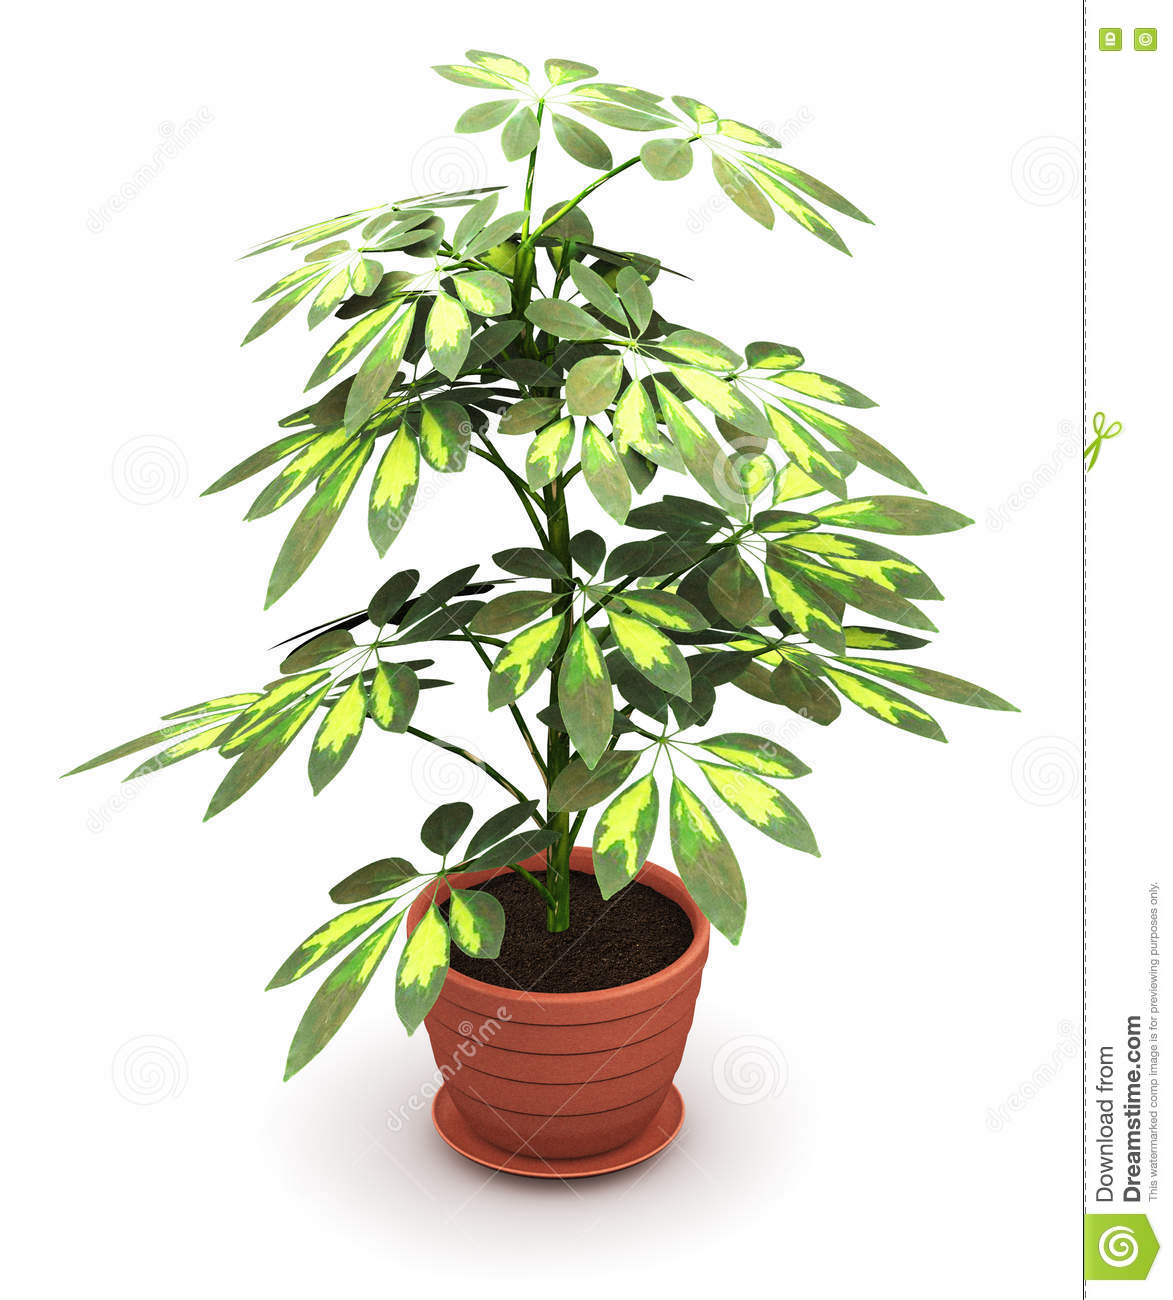 Schefflera Arboricola Plant In Flower Pot Stock